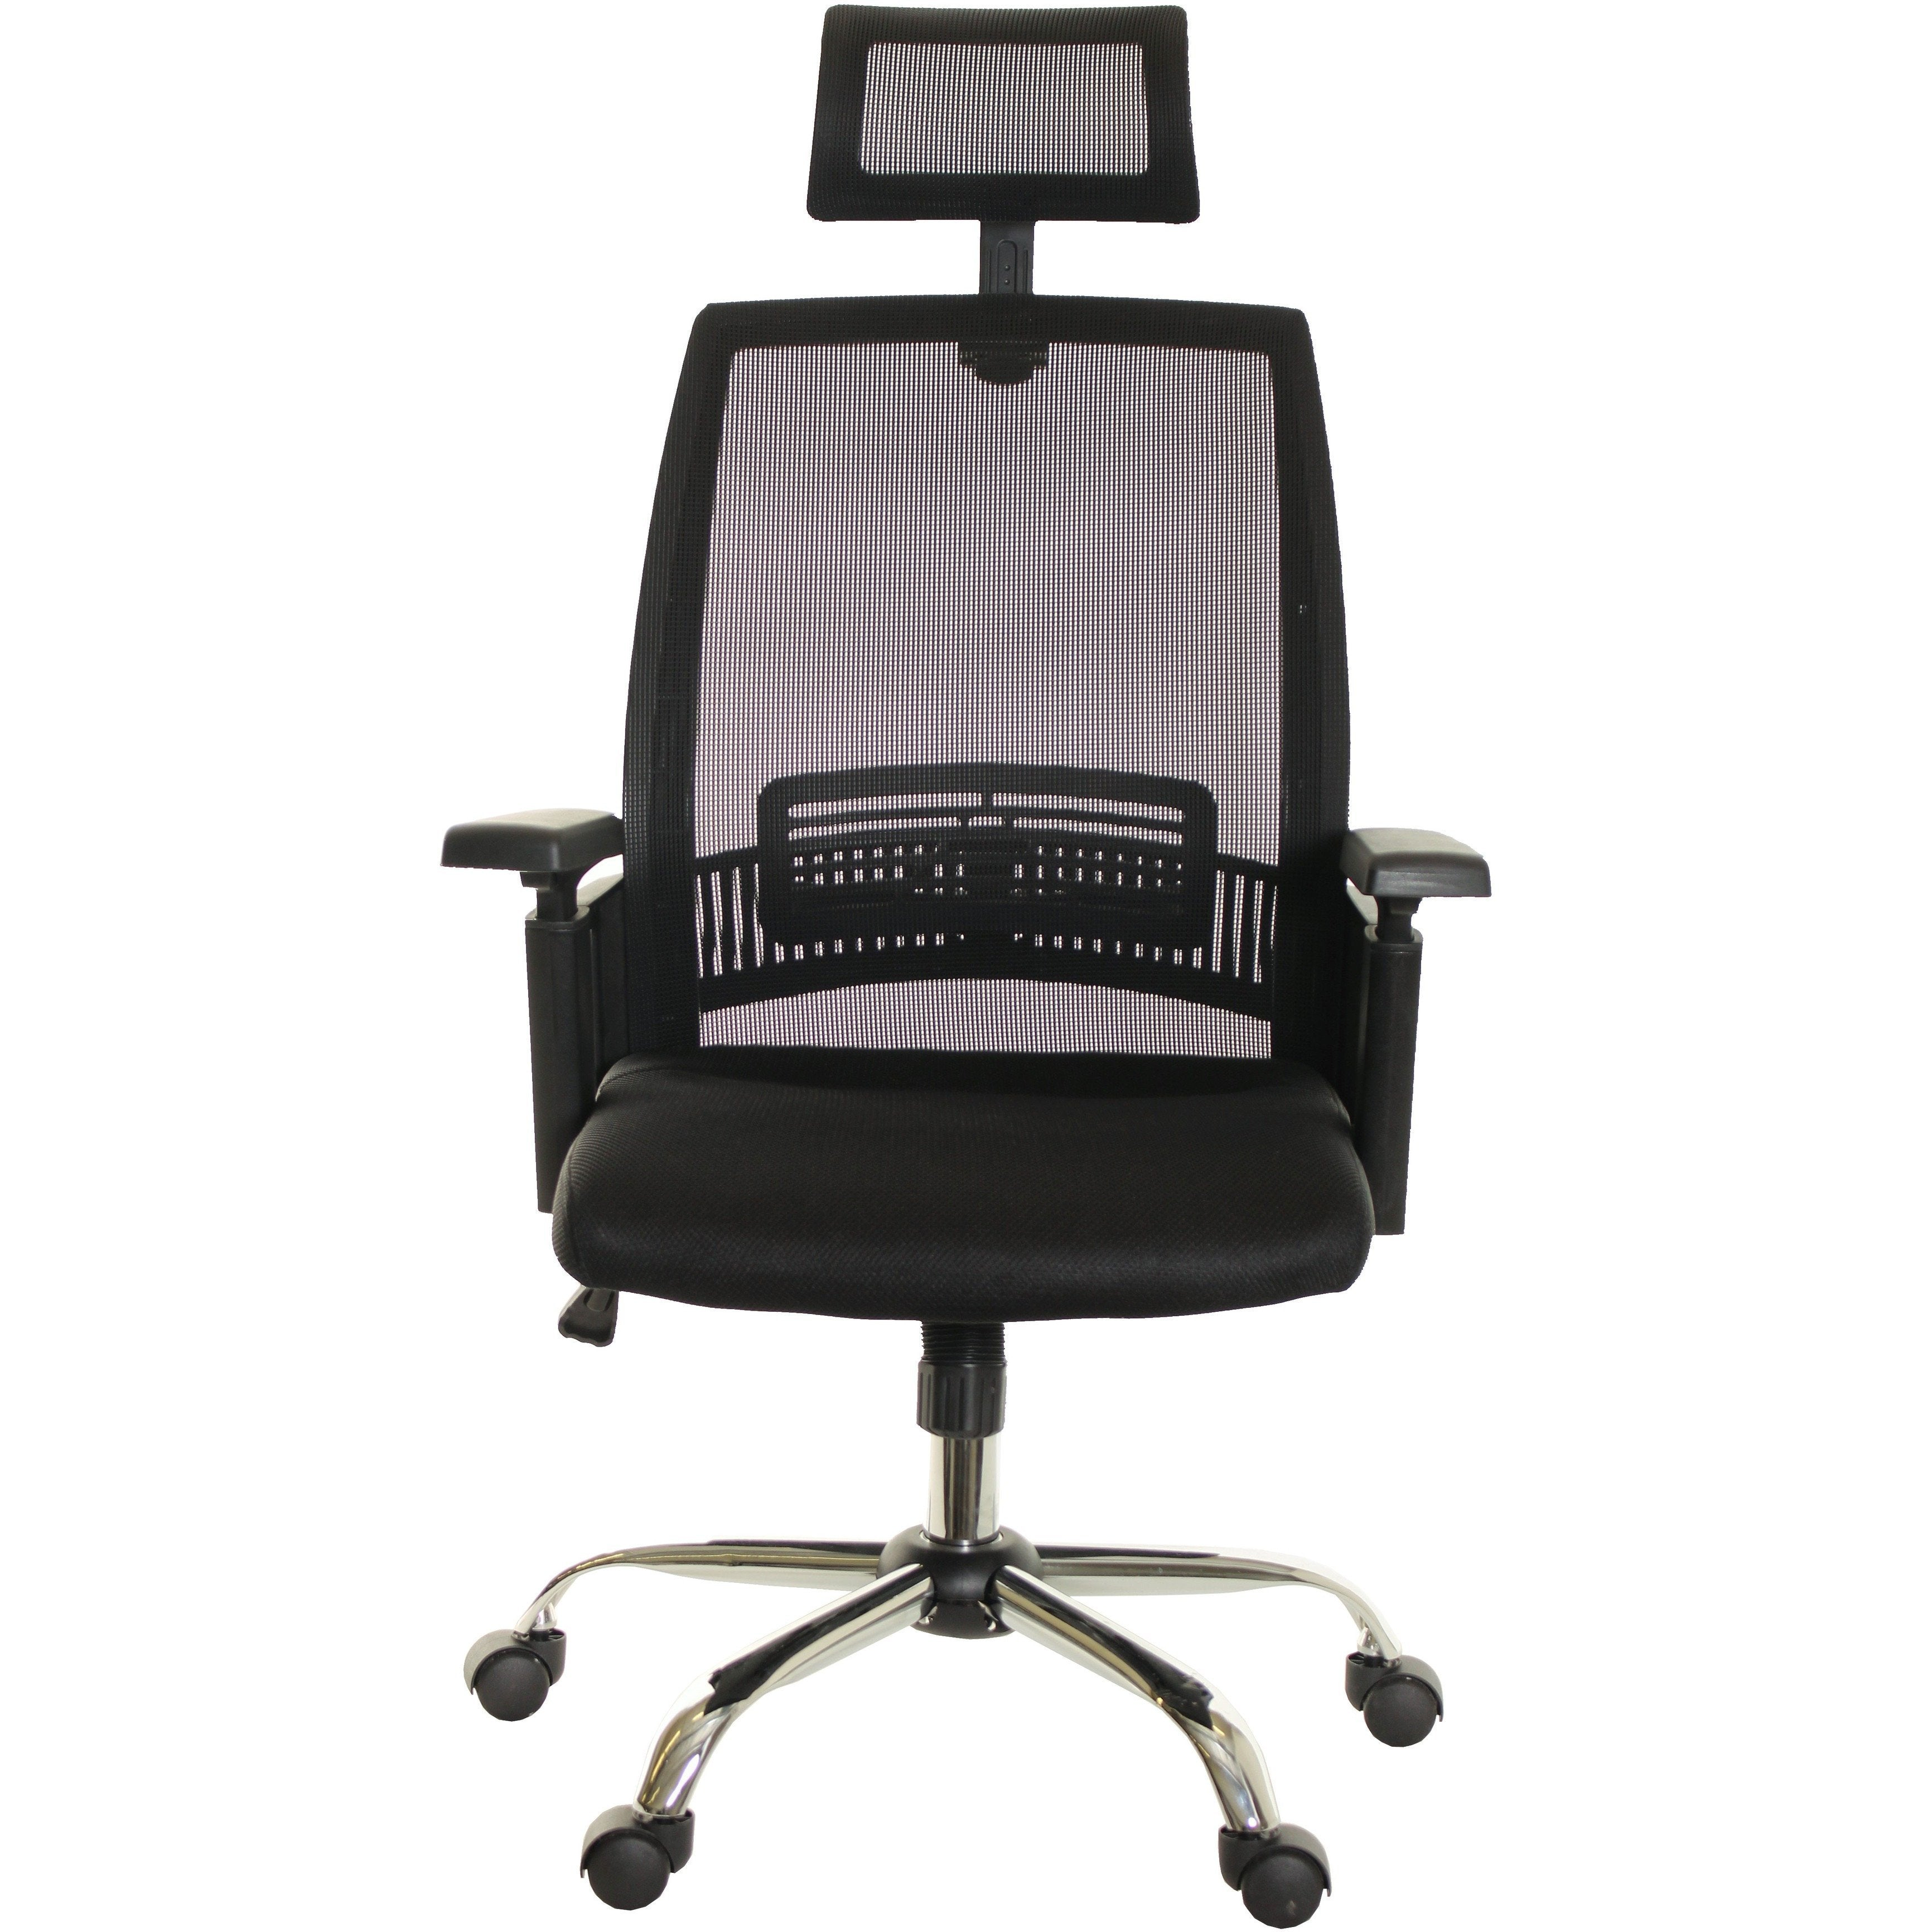 Mesh Task Chair Office High Back Black With Headrest Metal Base By TimeOffice